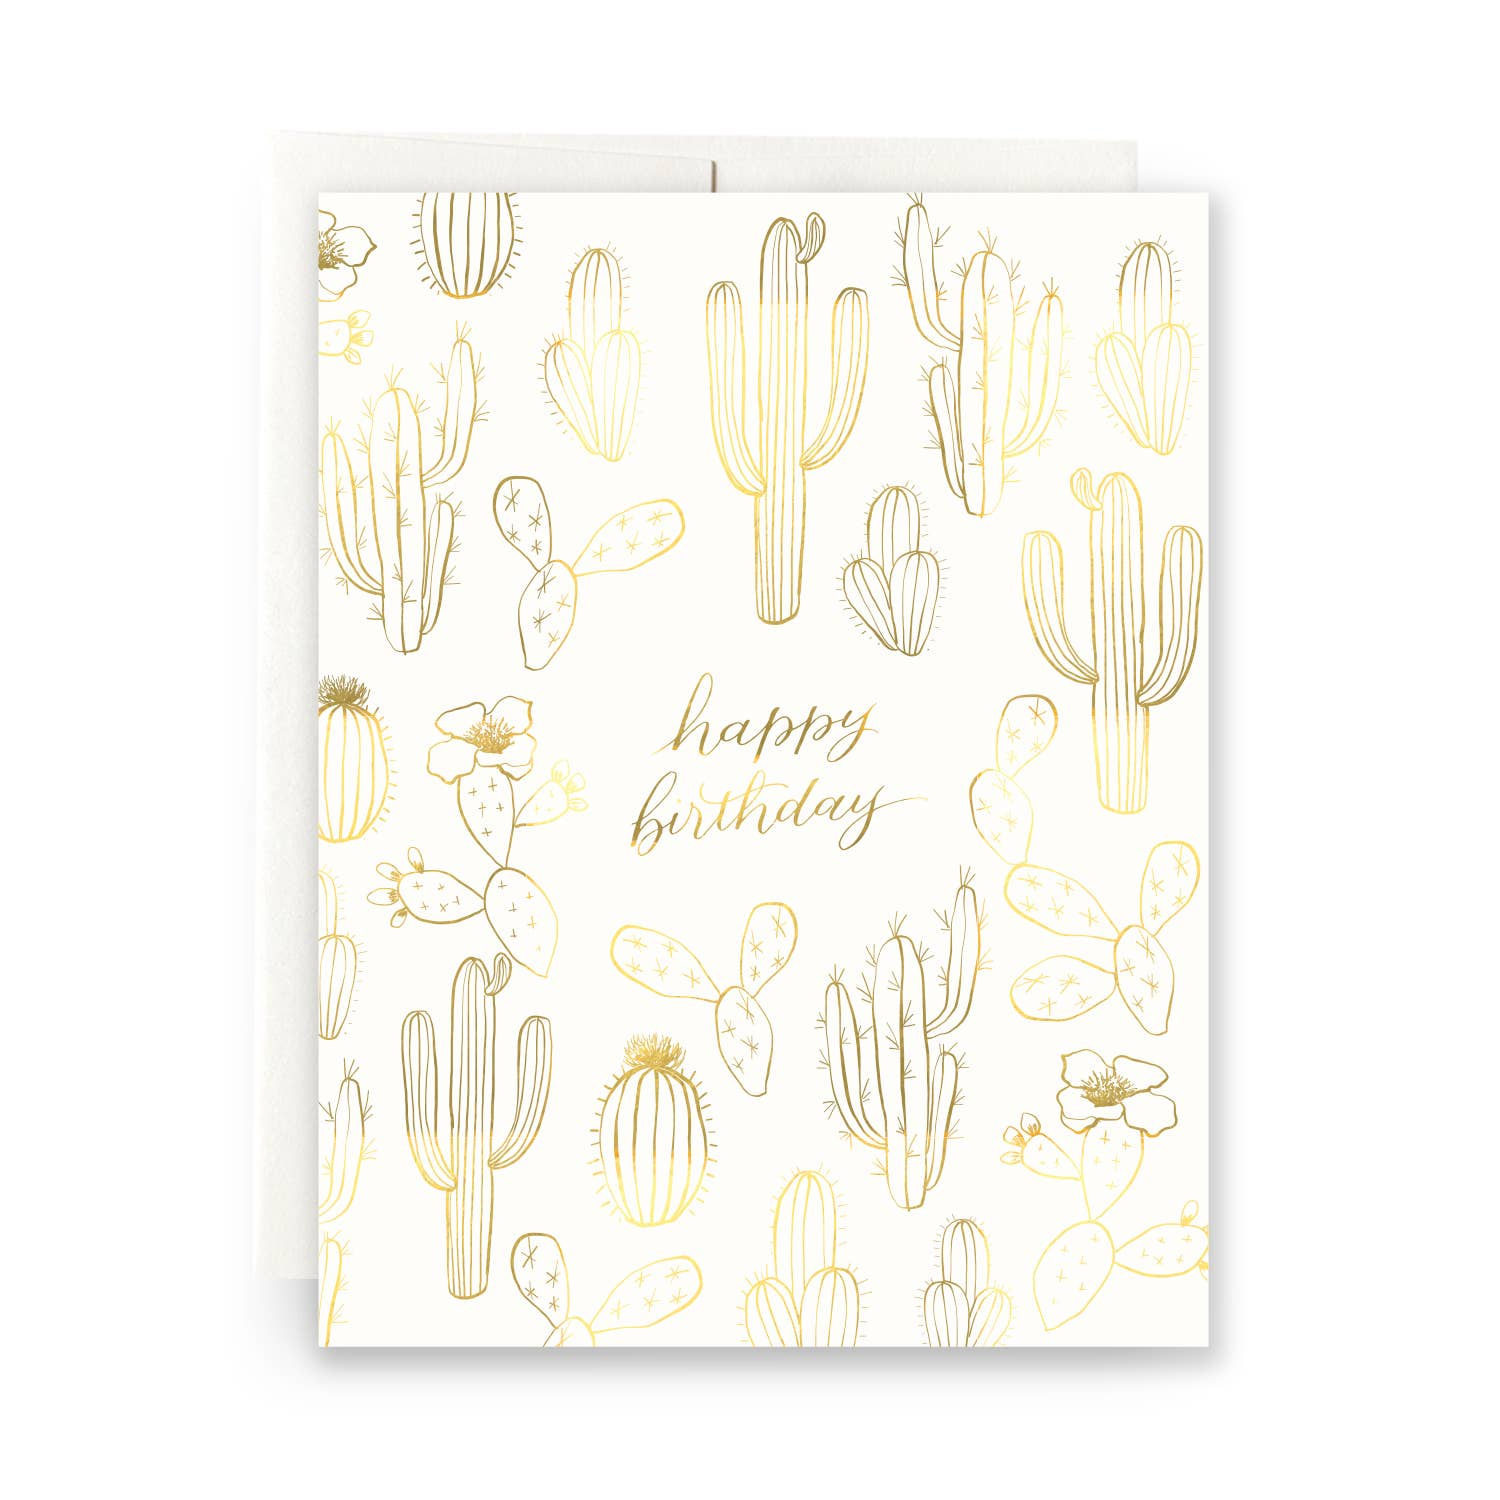 Gilded Cactus Birthday Greeting Card